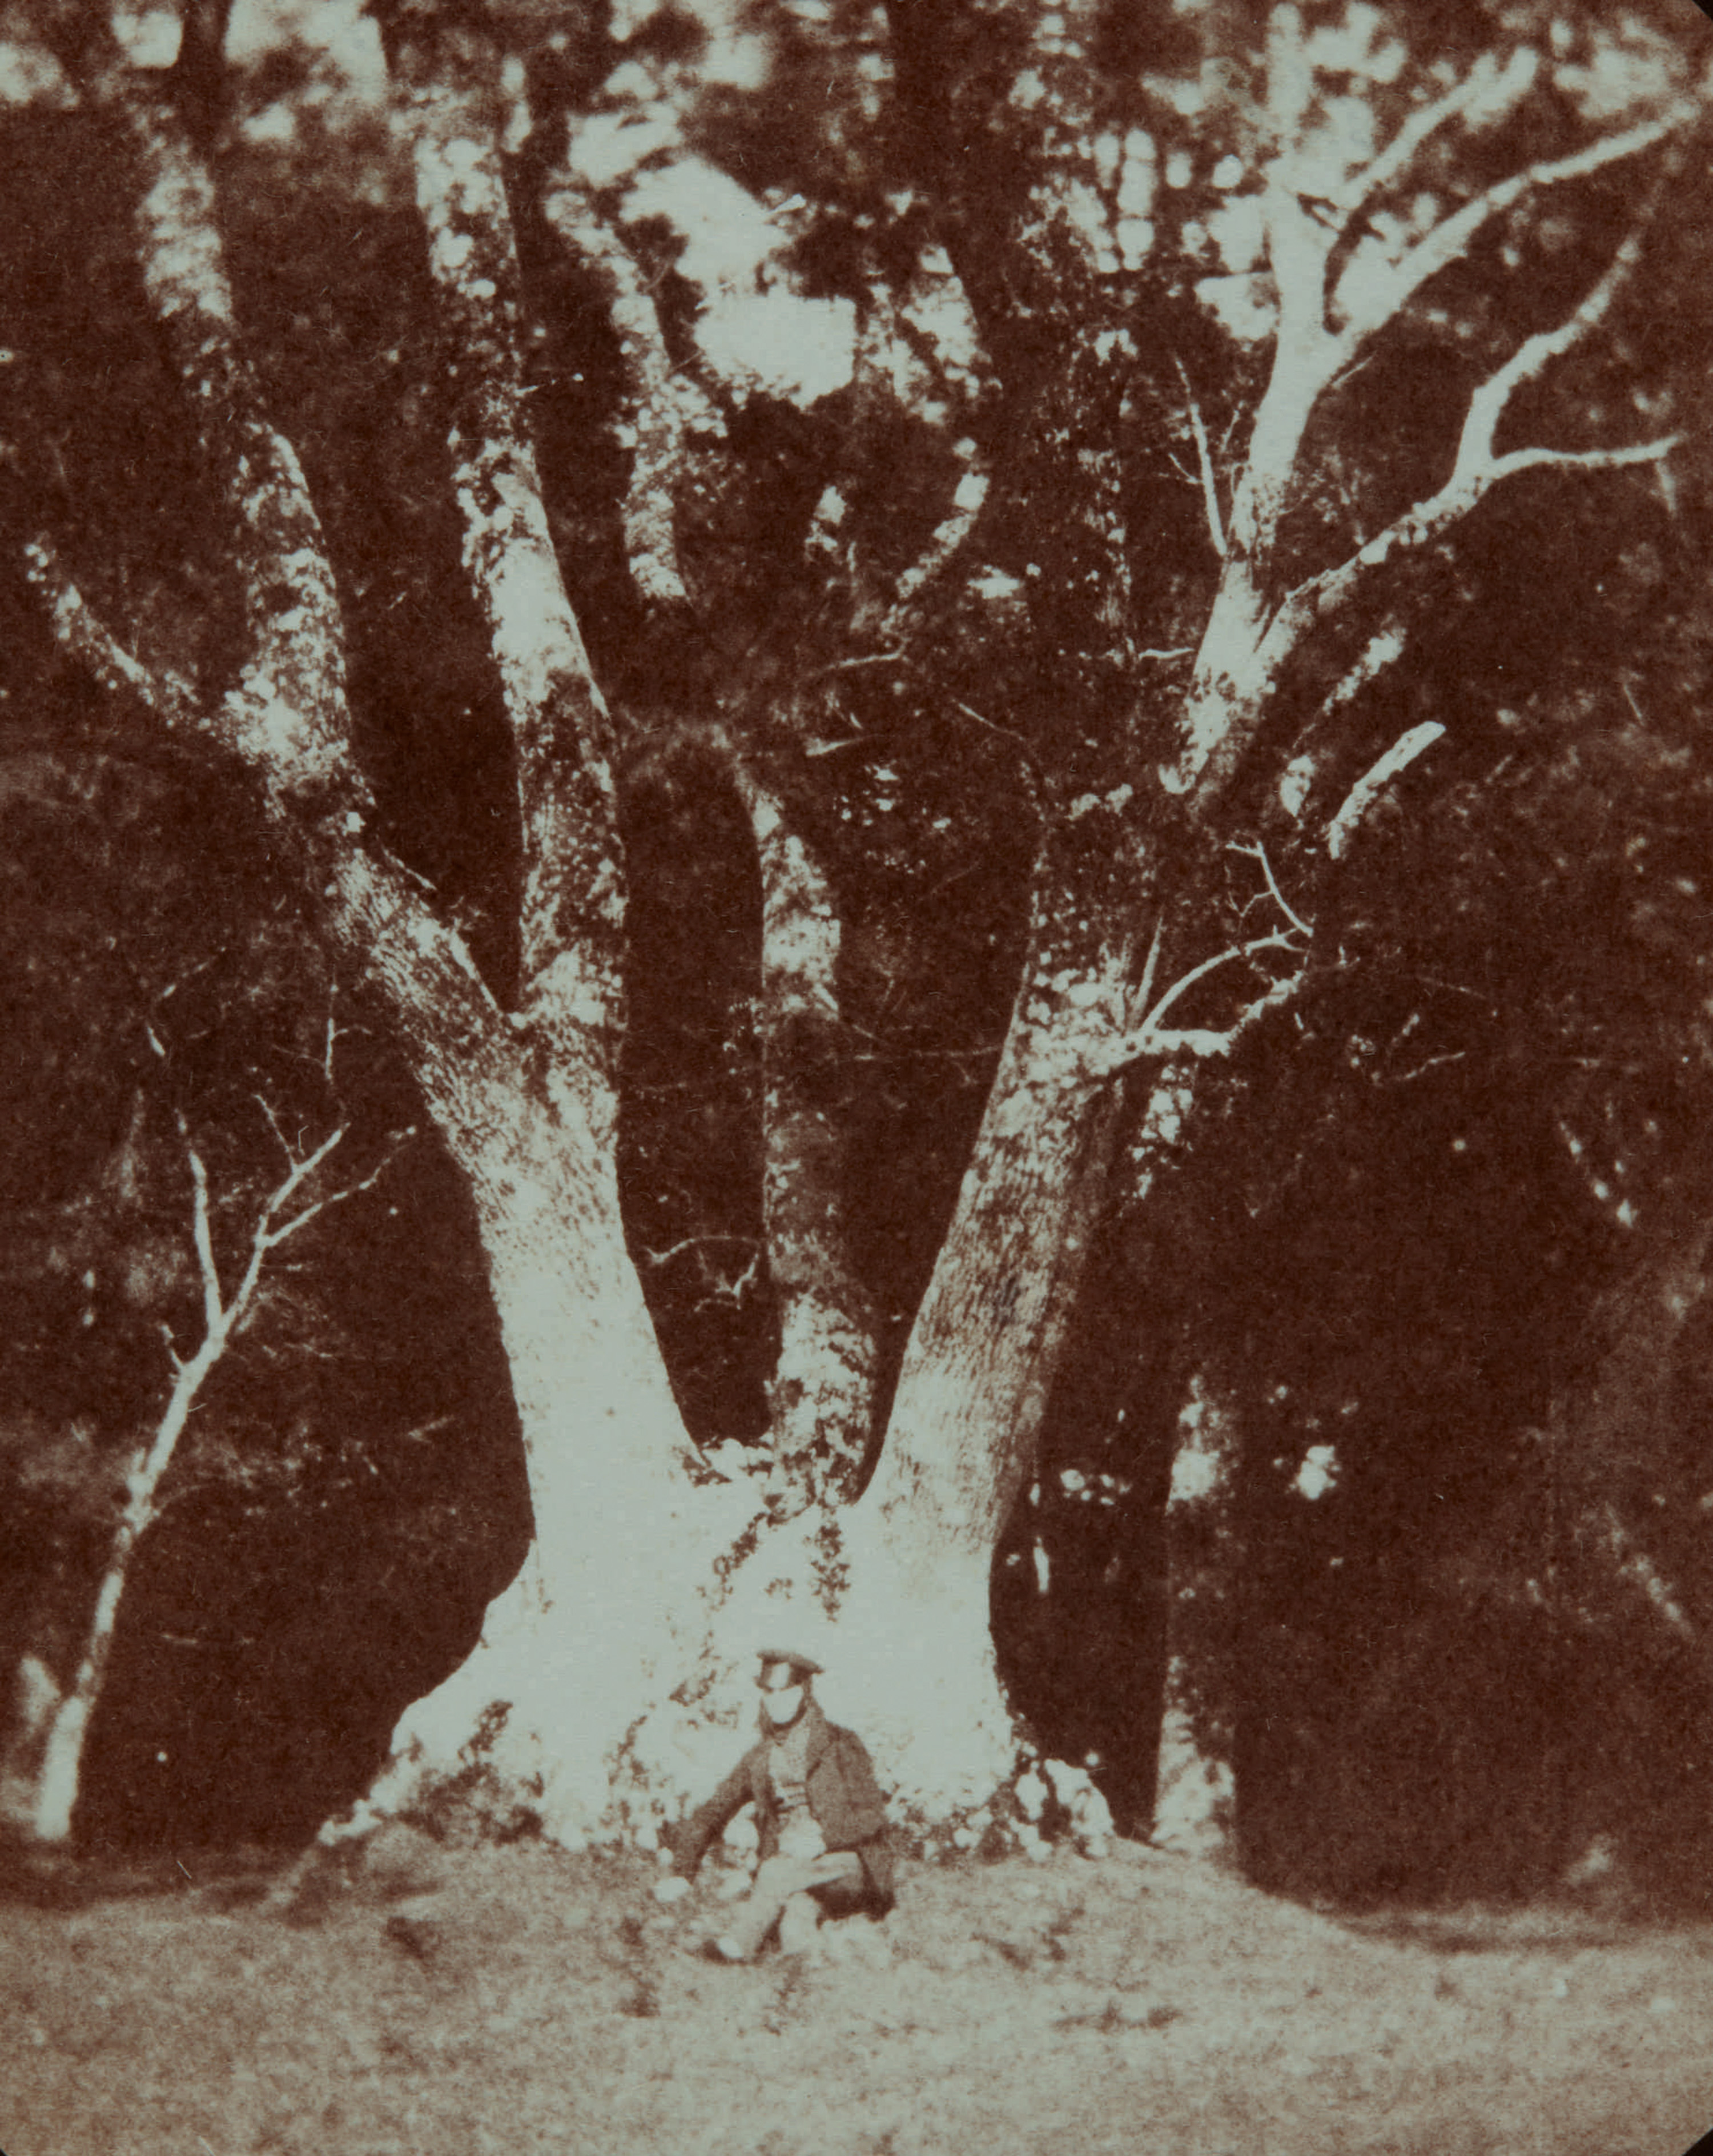 Fotó: William Henry Fox Talbot:<br />Ash tree in Ugbrooke Park, Devon <br />William Henry Fox Talbot Archive<br />Courtesy of Sotheby's